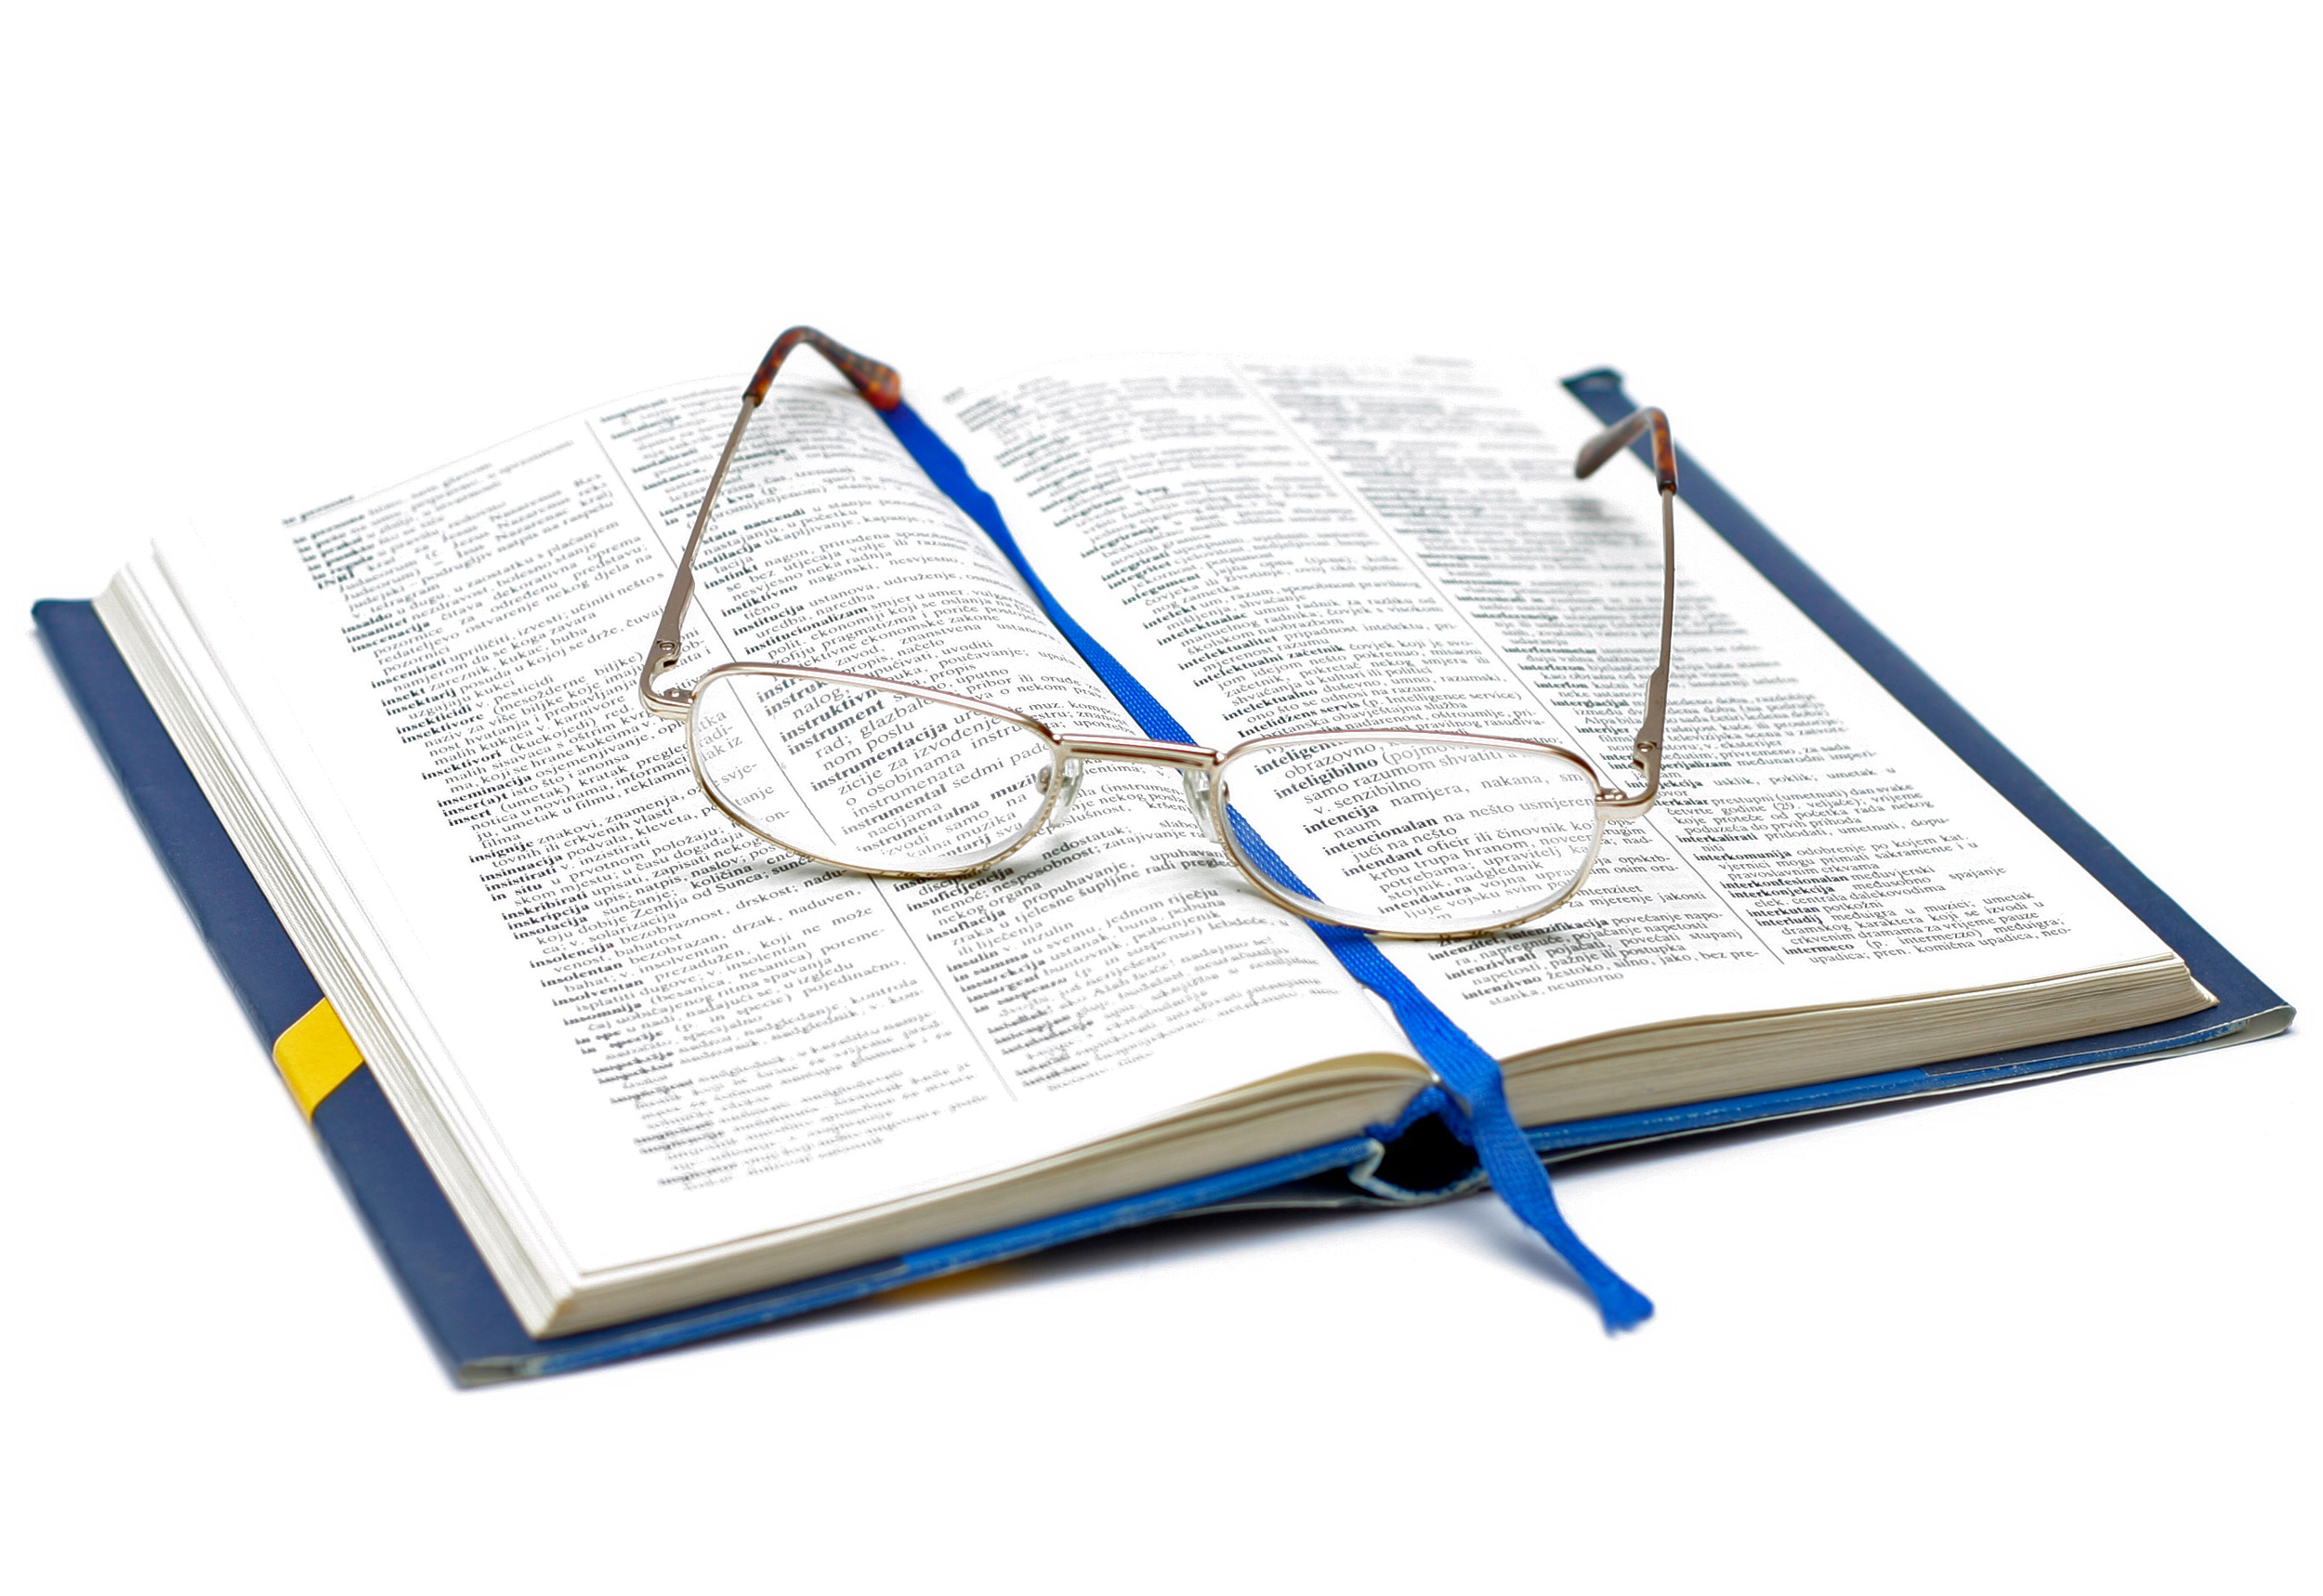 Book_and_Glasses.jpg